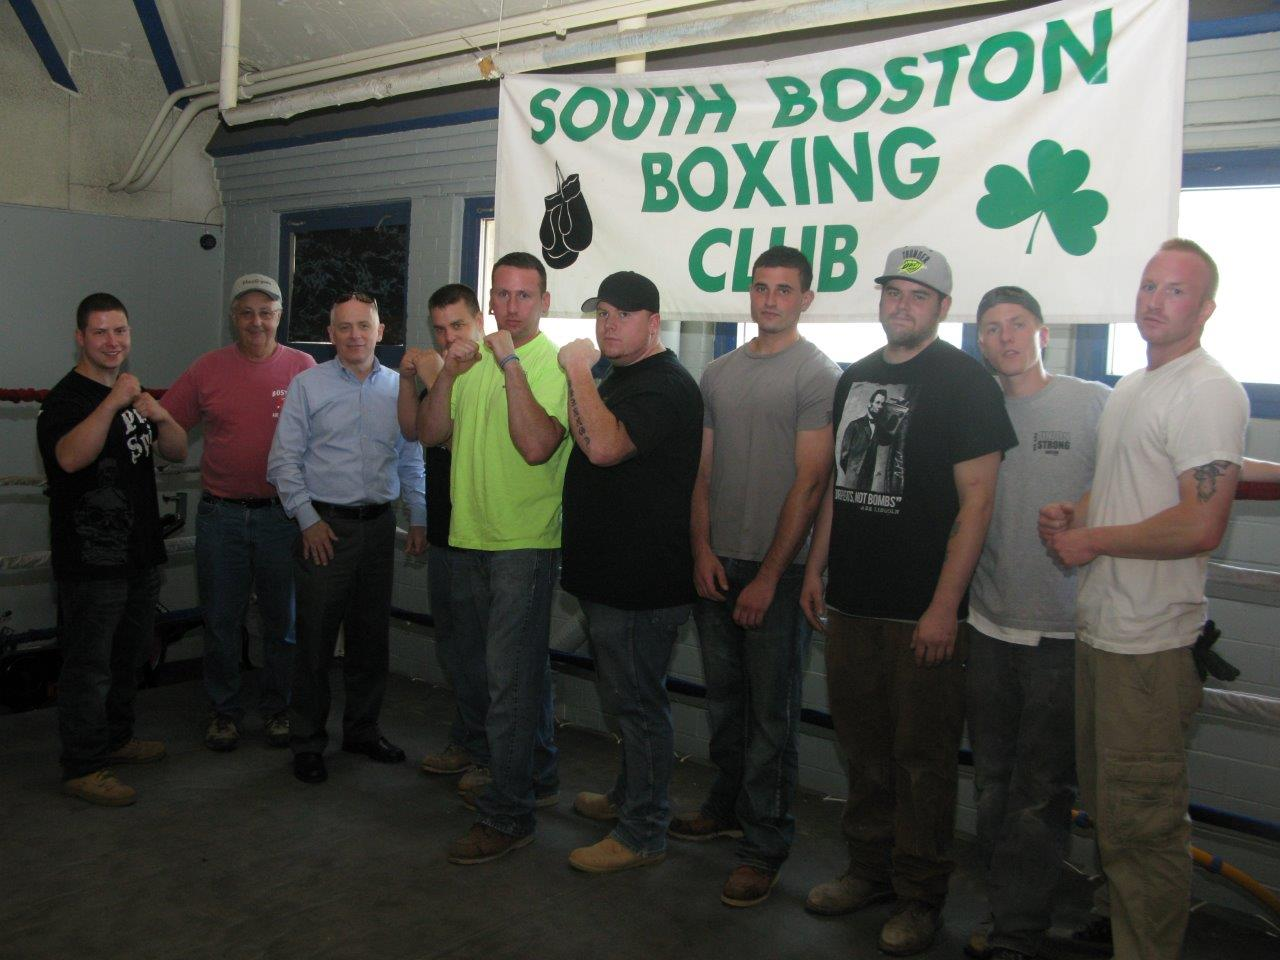 Local-17-South-Boston-Boxing-Club-3